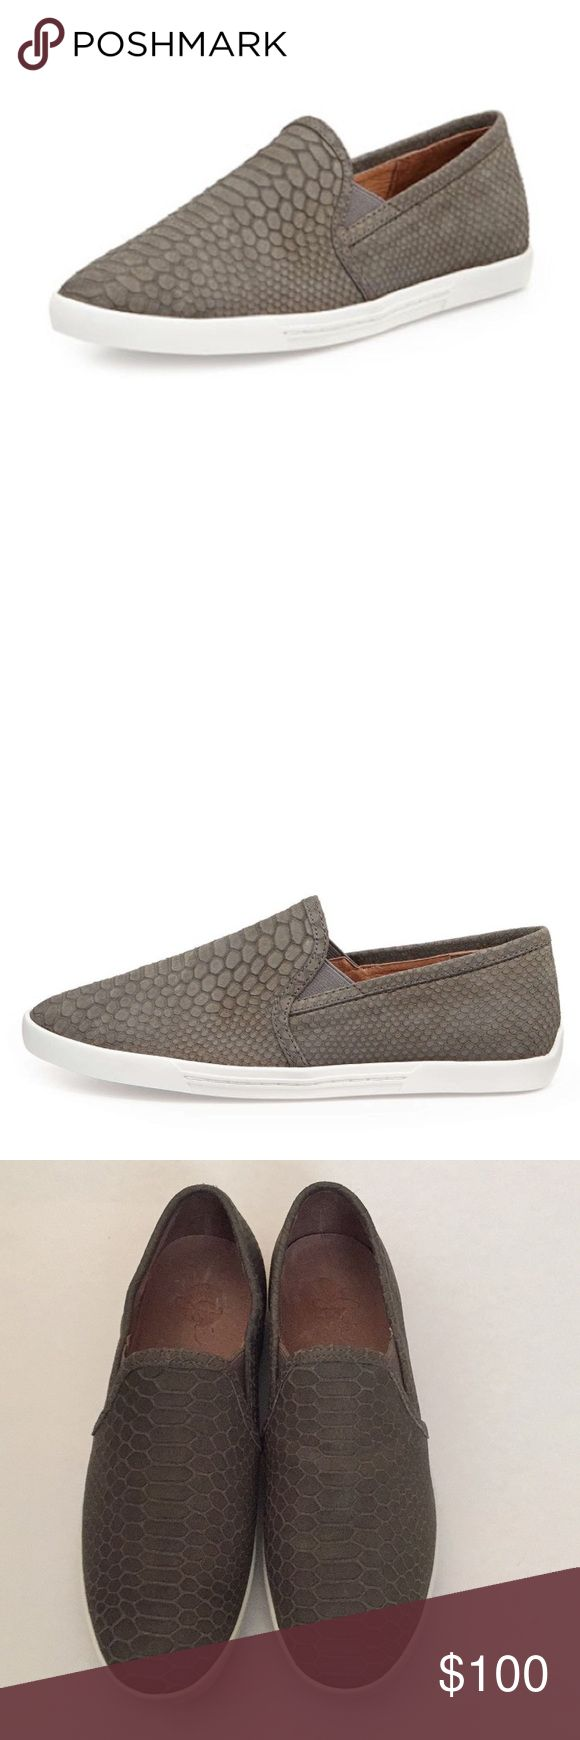 Joie Snake Print Kidmore Sneaker The street wear staple gets a chic update in python stamped leather. An off duty classic with luxe appeal, the Kidmore slip on sneaker is a wardrobe must! Leather. Size is European 37.5/ US 7. Color is a grey/taupe. Joie Shoes Sneakers